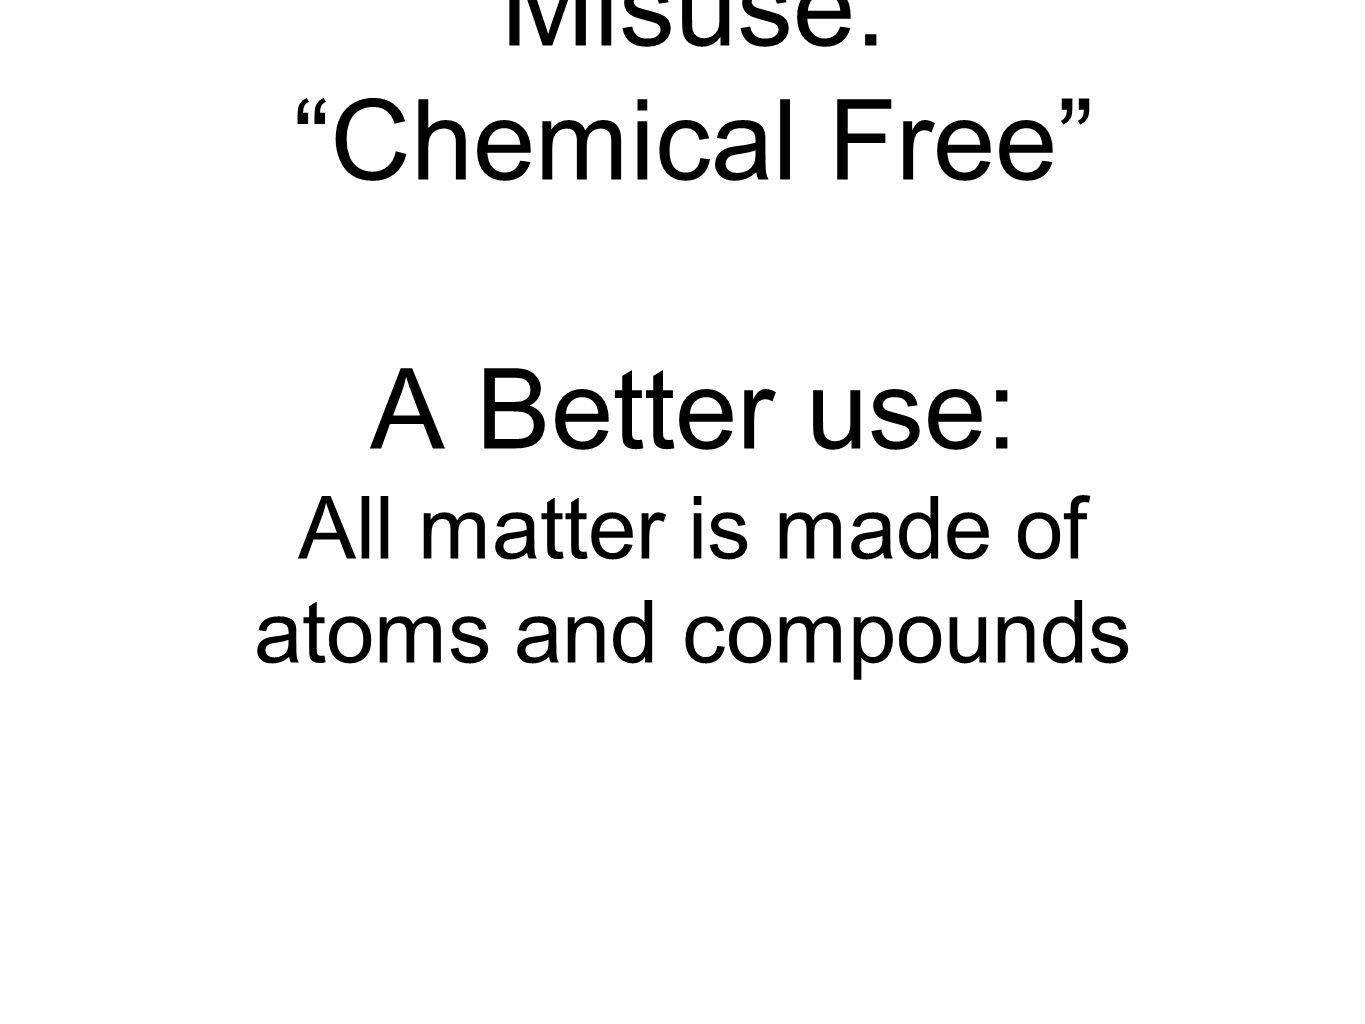 Misuse: Chemical Free A Better use: All matter is made of atoms and compounds